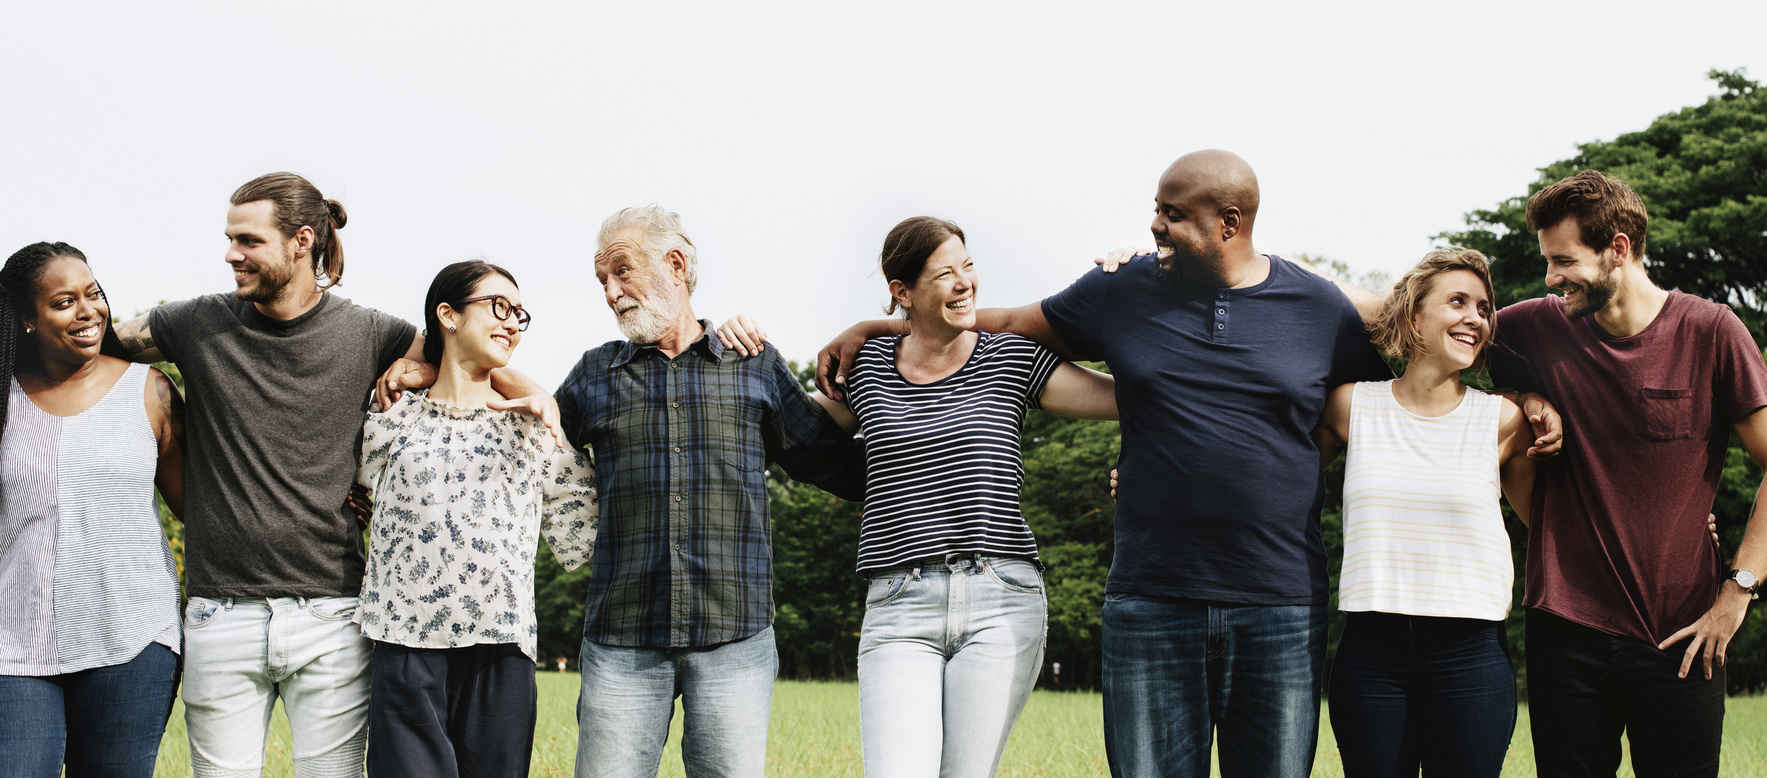 Improving individual and community wellbeing through relationships  image